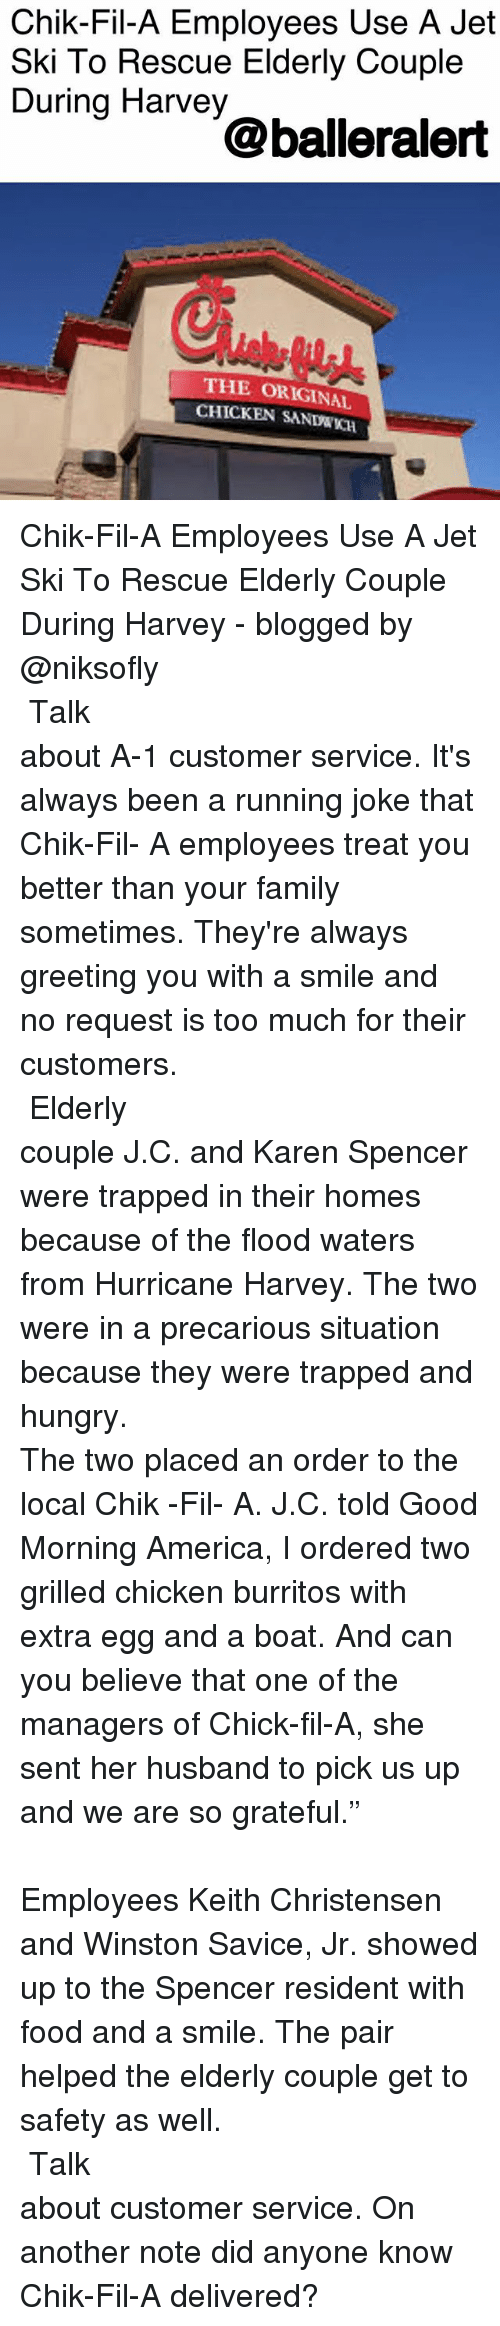 "America, Chick-Fil-A, and Family: Chik-Fil-A Employees Use A Jet  Ski To Rescue Elderly Couple  During Harvey  @balleralert  THE ORIGINAL  CHICKEN SANDWKCH Chik-Fil-A Employees Use A Jet Ski To Rescue Elderly Couple During Harvey - blogged by @niksofly ⠀⠀⠀⠀⠀⠀⠀⠀⠀⠀⠀⠀⠀⠀⠀⠀⠀⠀⠀⠀⠀⠀⠀⠀⠀⠀⠀⠀⠀⠀⠀⠀⠀⠀⠀⠀ Talk about A-1 customer service. It's always been a running joke that Chik-Fil- A employees treat you better than your family sometimes. They're always greeting you with a smile and no request is too much for their customers. ⠀⠀⠀⠀⠀⠀⠀⠀⠀⠀⠀⠀⠀⠀⠀⠀⠀⠀⠀⠀⠀⠀⠀⠀⠀⠀⠀⠀⠀⠀⠀⠀⠀⠀⠀⠀ Elderly couple J.C. and Karen Spencer were trapped in their homes because of the flood waters from Hurricane Harvey. The two were in a precarious situation because they were trapped and hungry. ⠀⠀⠀⠀⠀⠀⠀⠀⠀⠀⠀⠀⠀⠀⠀⠀⠀⠀⠀⠀⠀⠀⠀⠀⠀⠀⠀⠀⠀⠀⠀⠀⠀⠀⠀⠀ The two placed an order to the local Chik -Fil- A. J.C. told Good Morning America, I ordered two grilled chicken burritos with extra egg and a boat. And can you believe that one of the managers of Chick-fil-A, she sent her husband to pick us up and we are so grateful."" ⠀⠀⠀⠀⠀⠀⠀⠀⠀⠀⠀⠀⠀⠀⠀⠀⠀⠀⠀⠀⠀⠀⠀⠀⠀⠀⠀⠀⠀⠀⠀⠀⠀⠀⠀⠀ Employees Keith Christensen and Winston Savice, Jr. showed up to the Spencer resident with food and a smile. The pair helped the elderly couple get to safety as well. ⠀⠀⠀⠀⠀⠀⠀⠀⠀⠀⠀⠀⠀⠀⠀⠀⠀⠀⠀⠀⠀⠀⠀⠀⠀⠀⠀⠀⠀⠀⠀⠀⠀⠀⠀⠀ Talk about customer service. On another note did anyone know Chik-Fil-A delivered?"